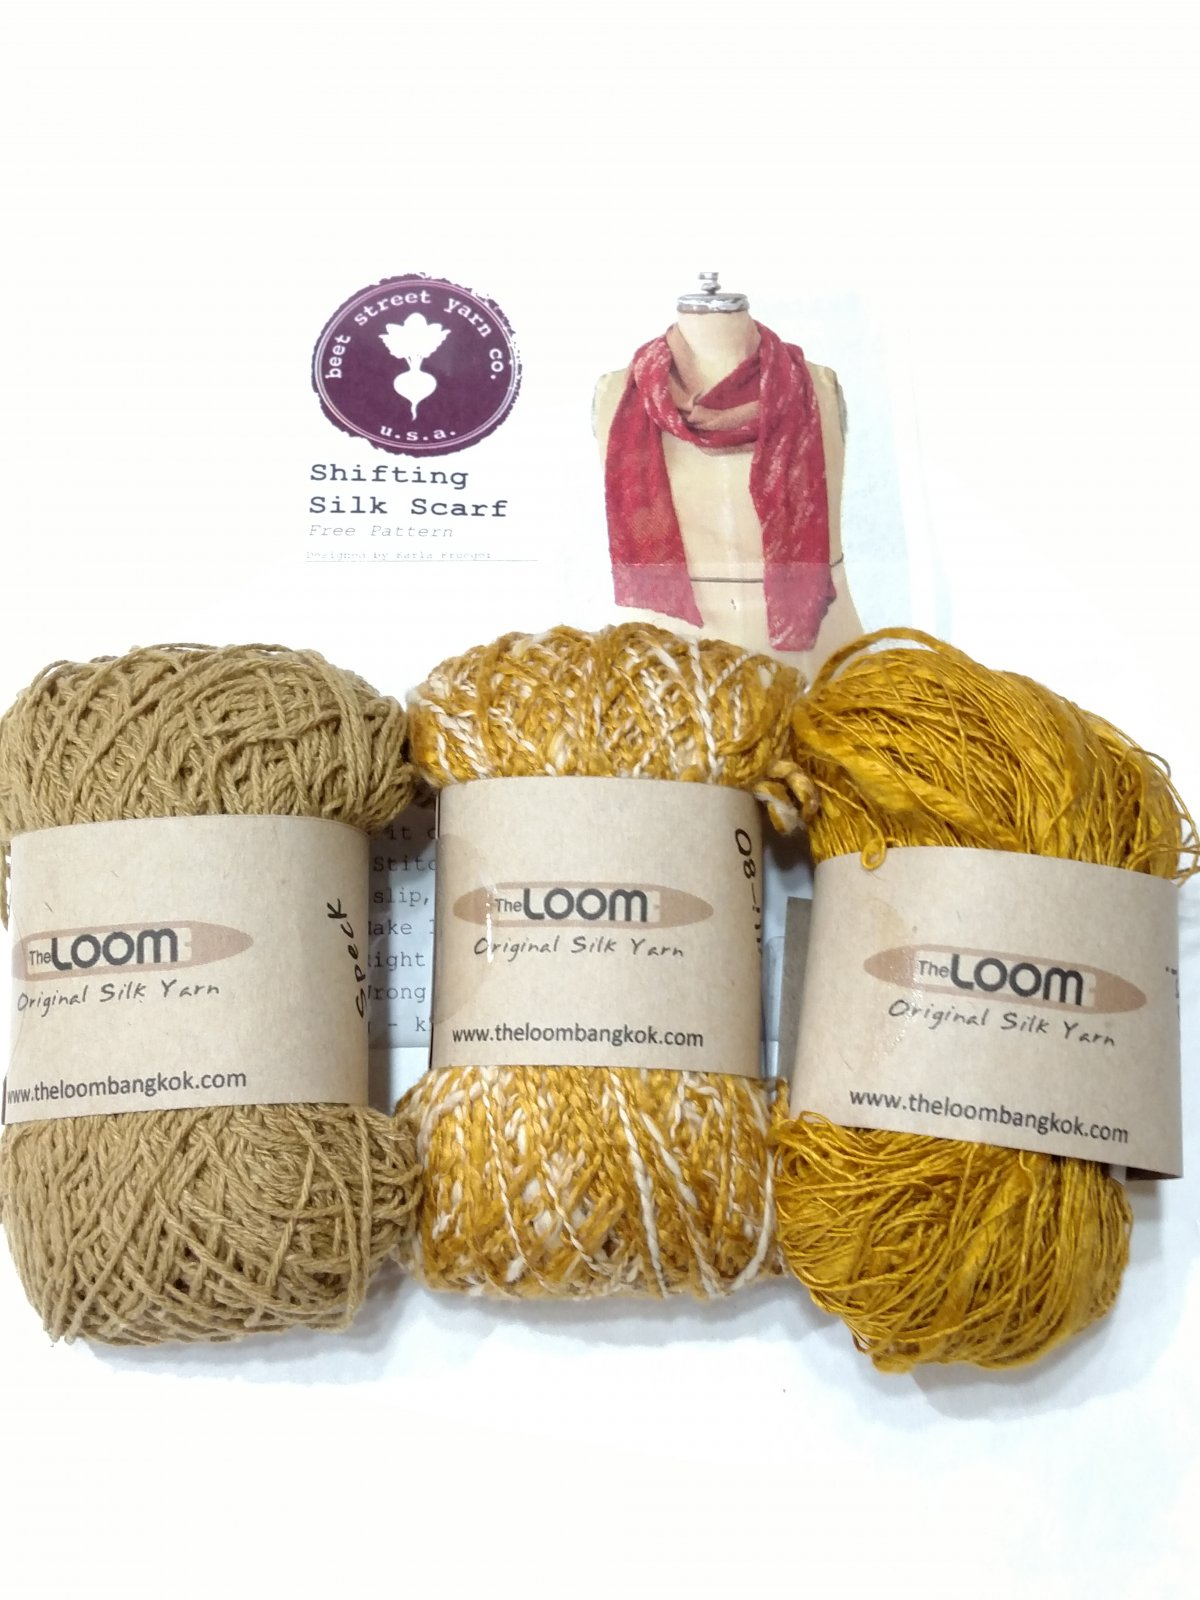 Loom Shifting Silk Scarf Kit